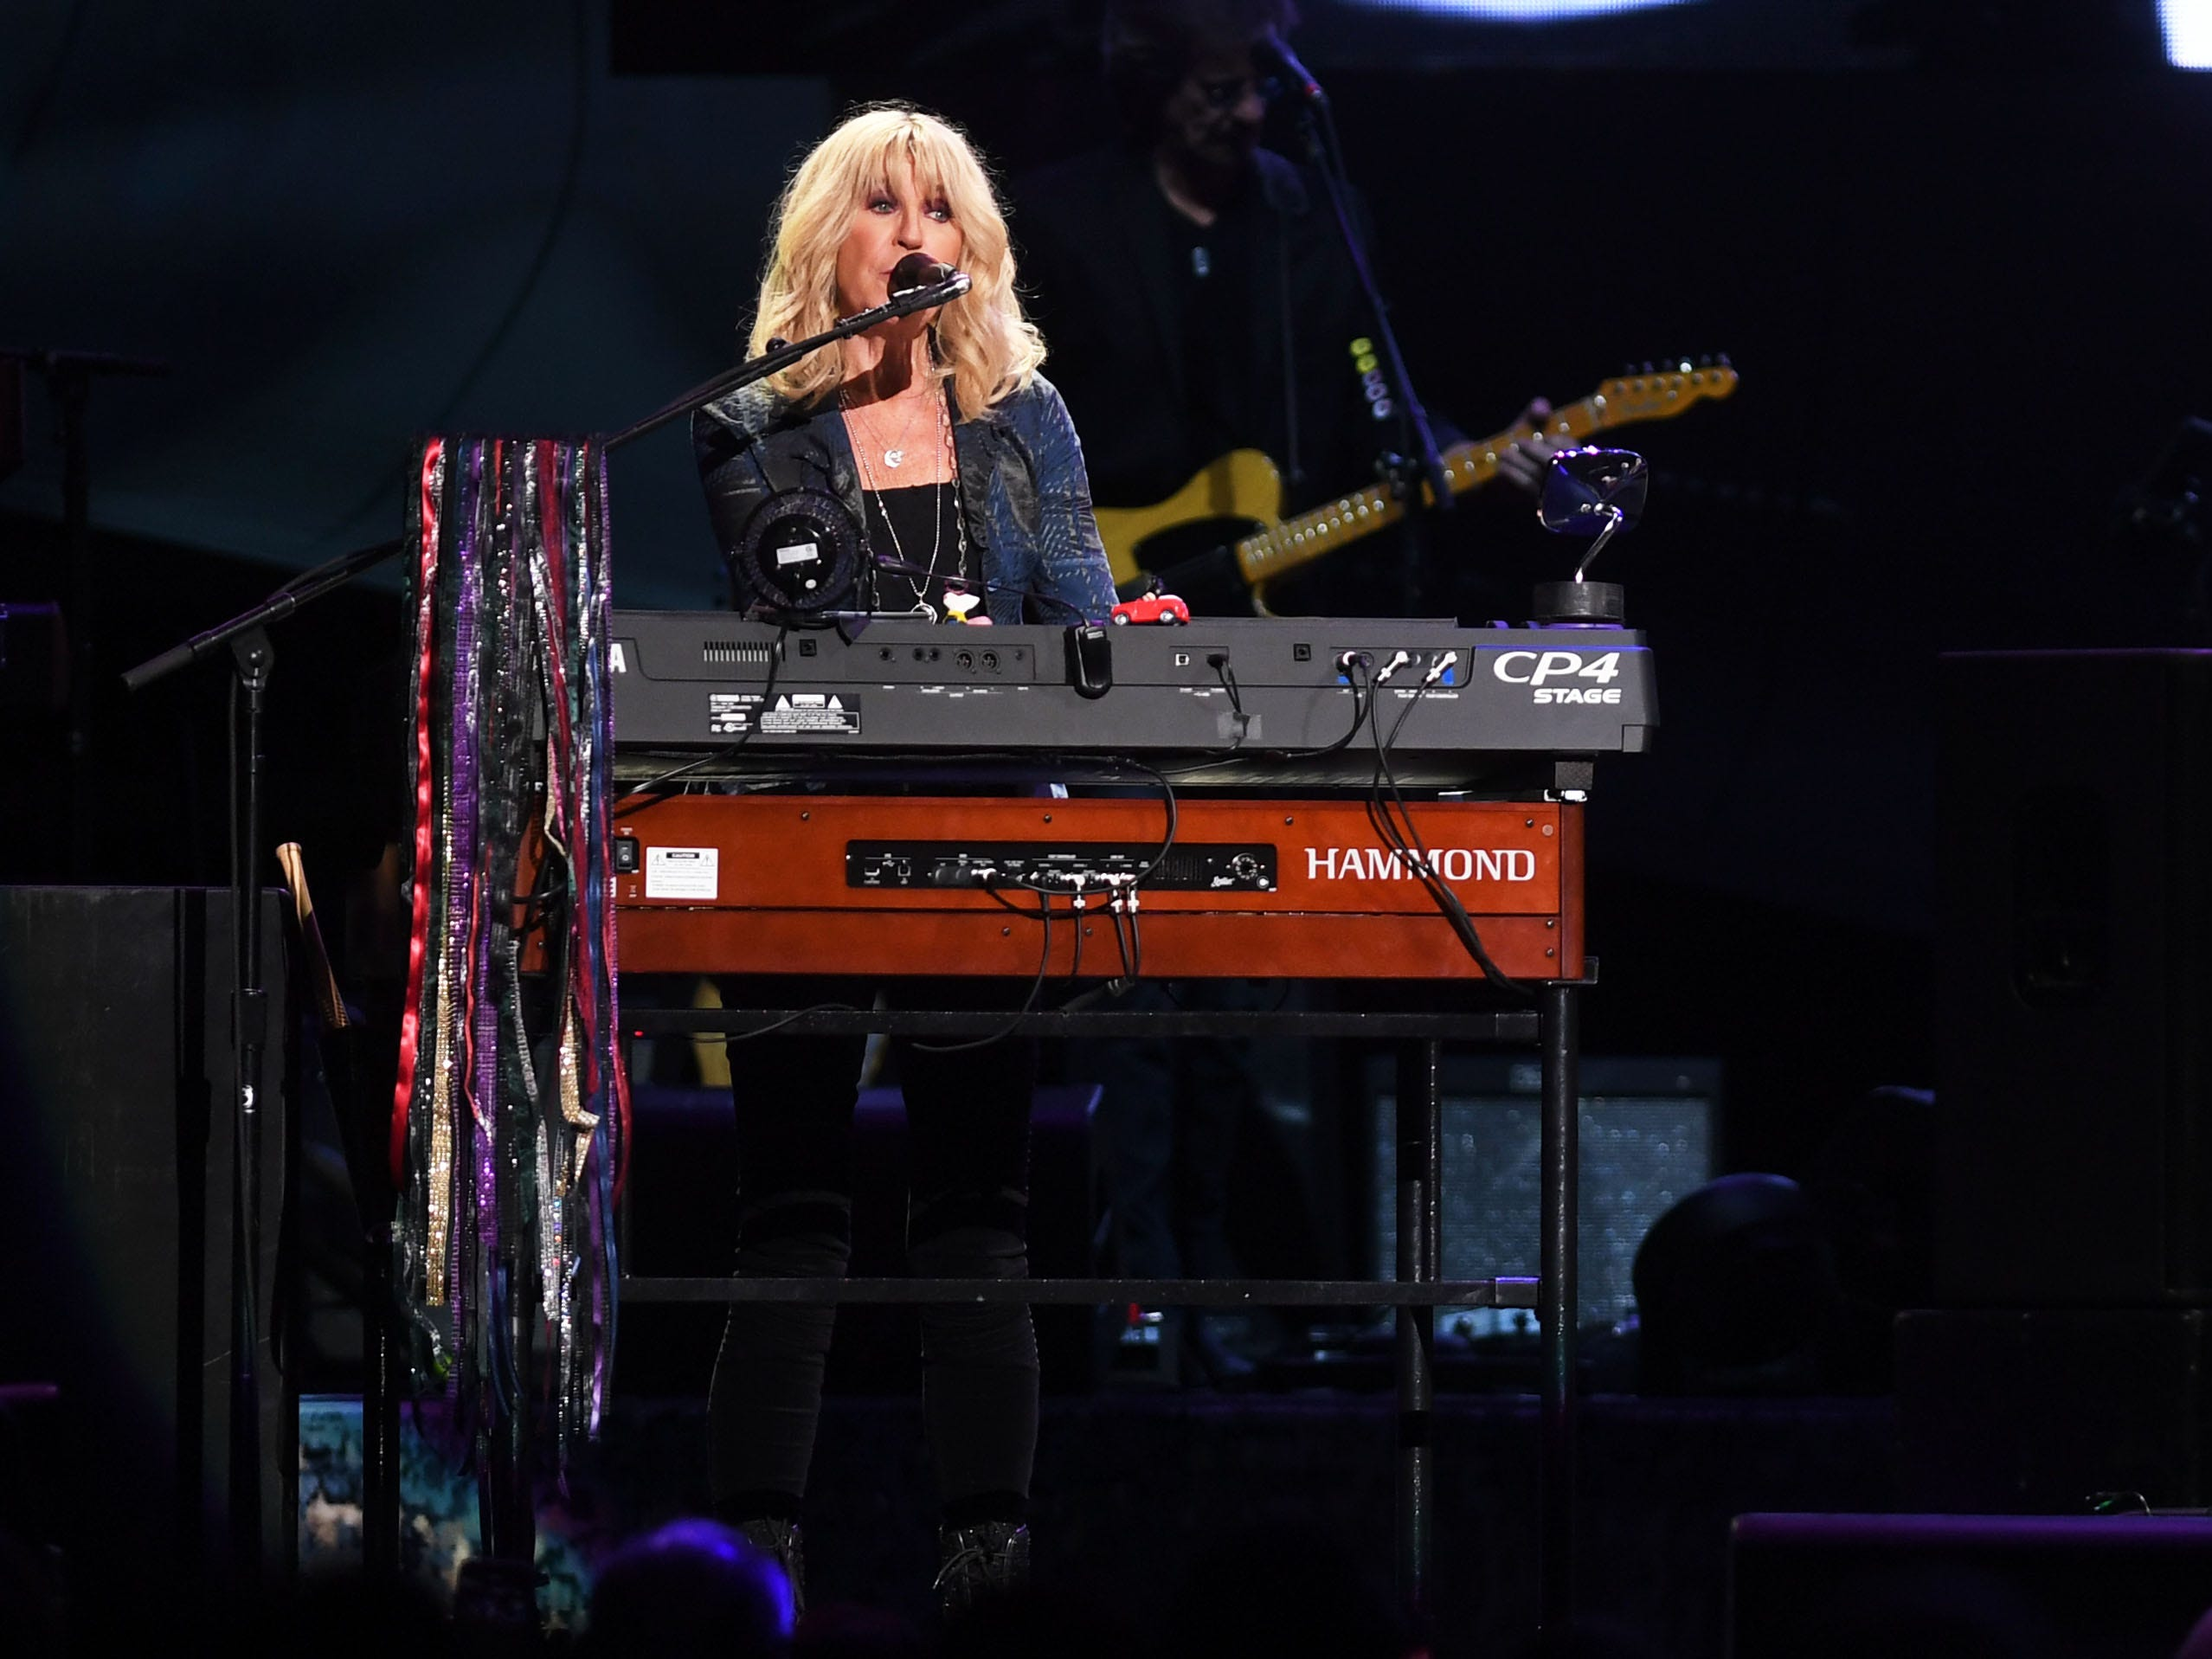 Fleetwood Mac's Christine McVie performs at the Denny Sanford Premier Center Saturday, Feb. 2, in Sioux Falls. The new lineup included Mick Fleetwood, John McVie, Stevie Nicks, Christine McVie, Mike Campbell and Neil Finn.